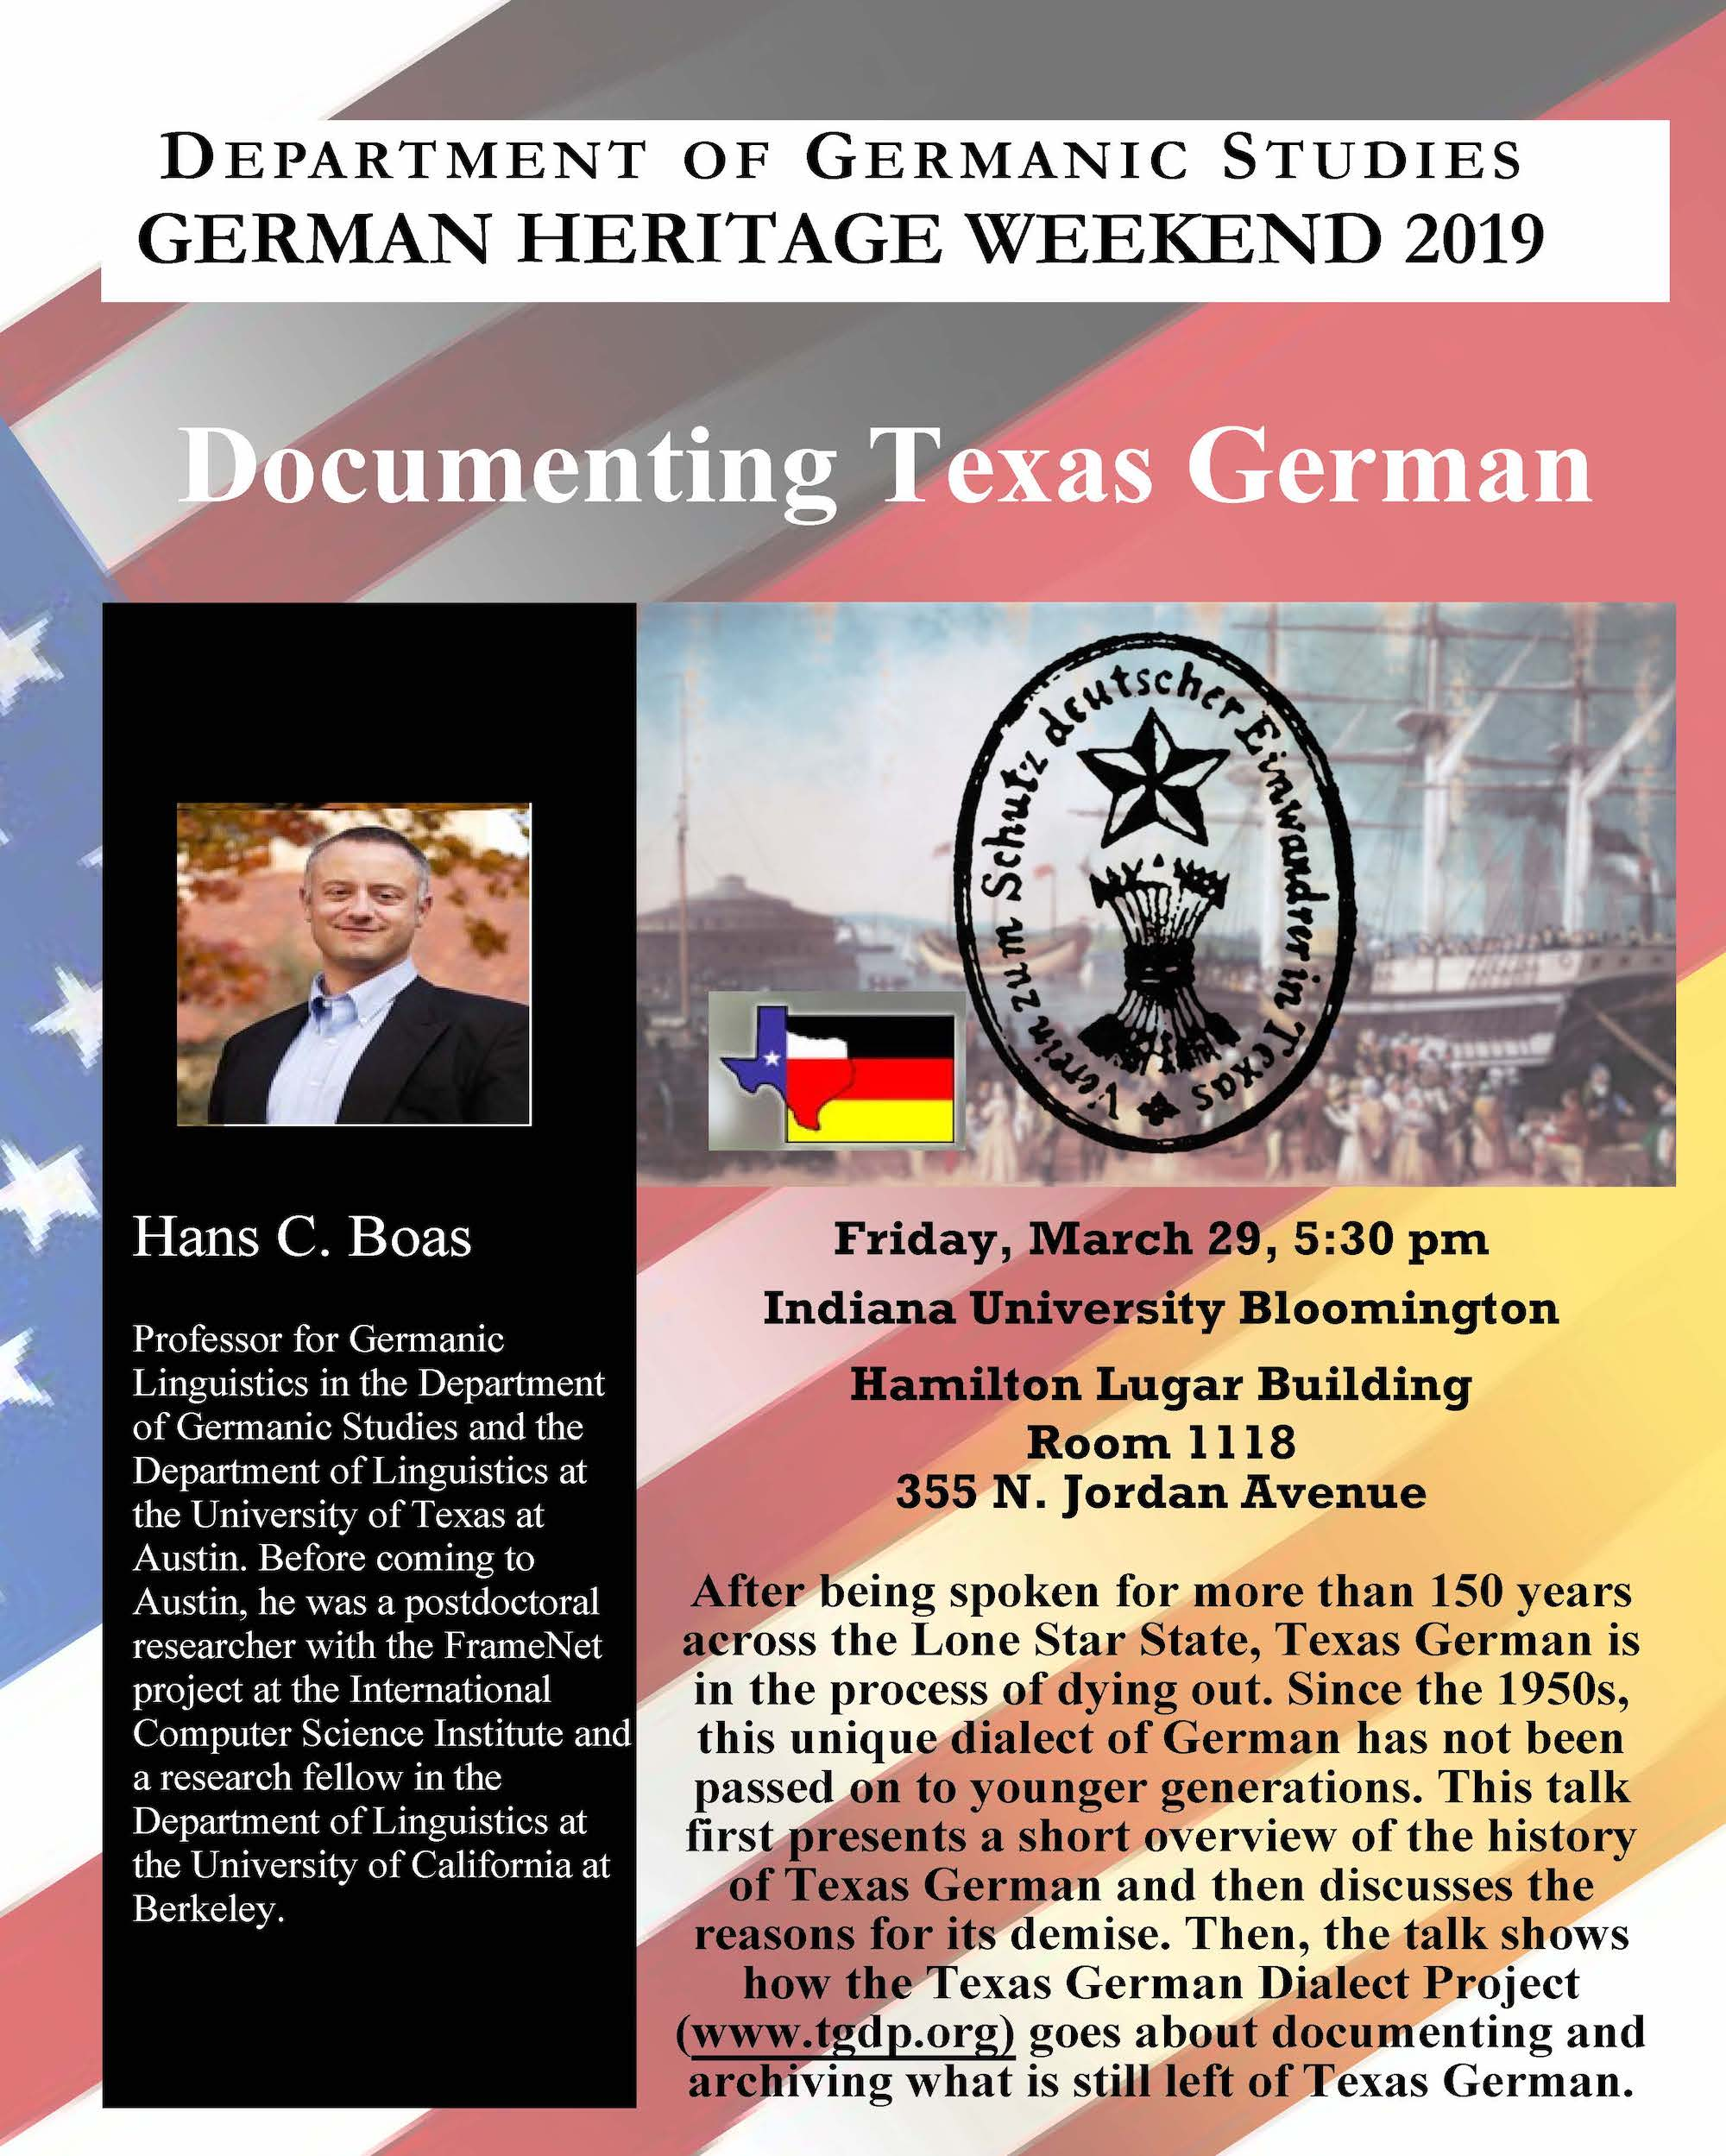 Texas German heads to Indiana